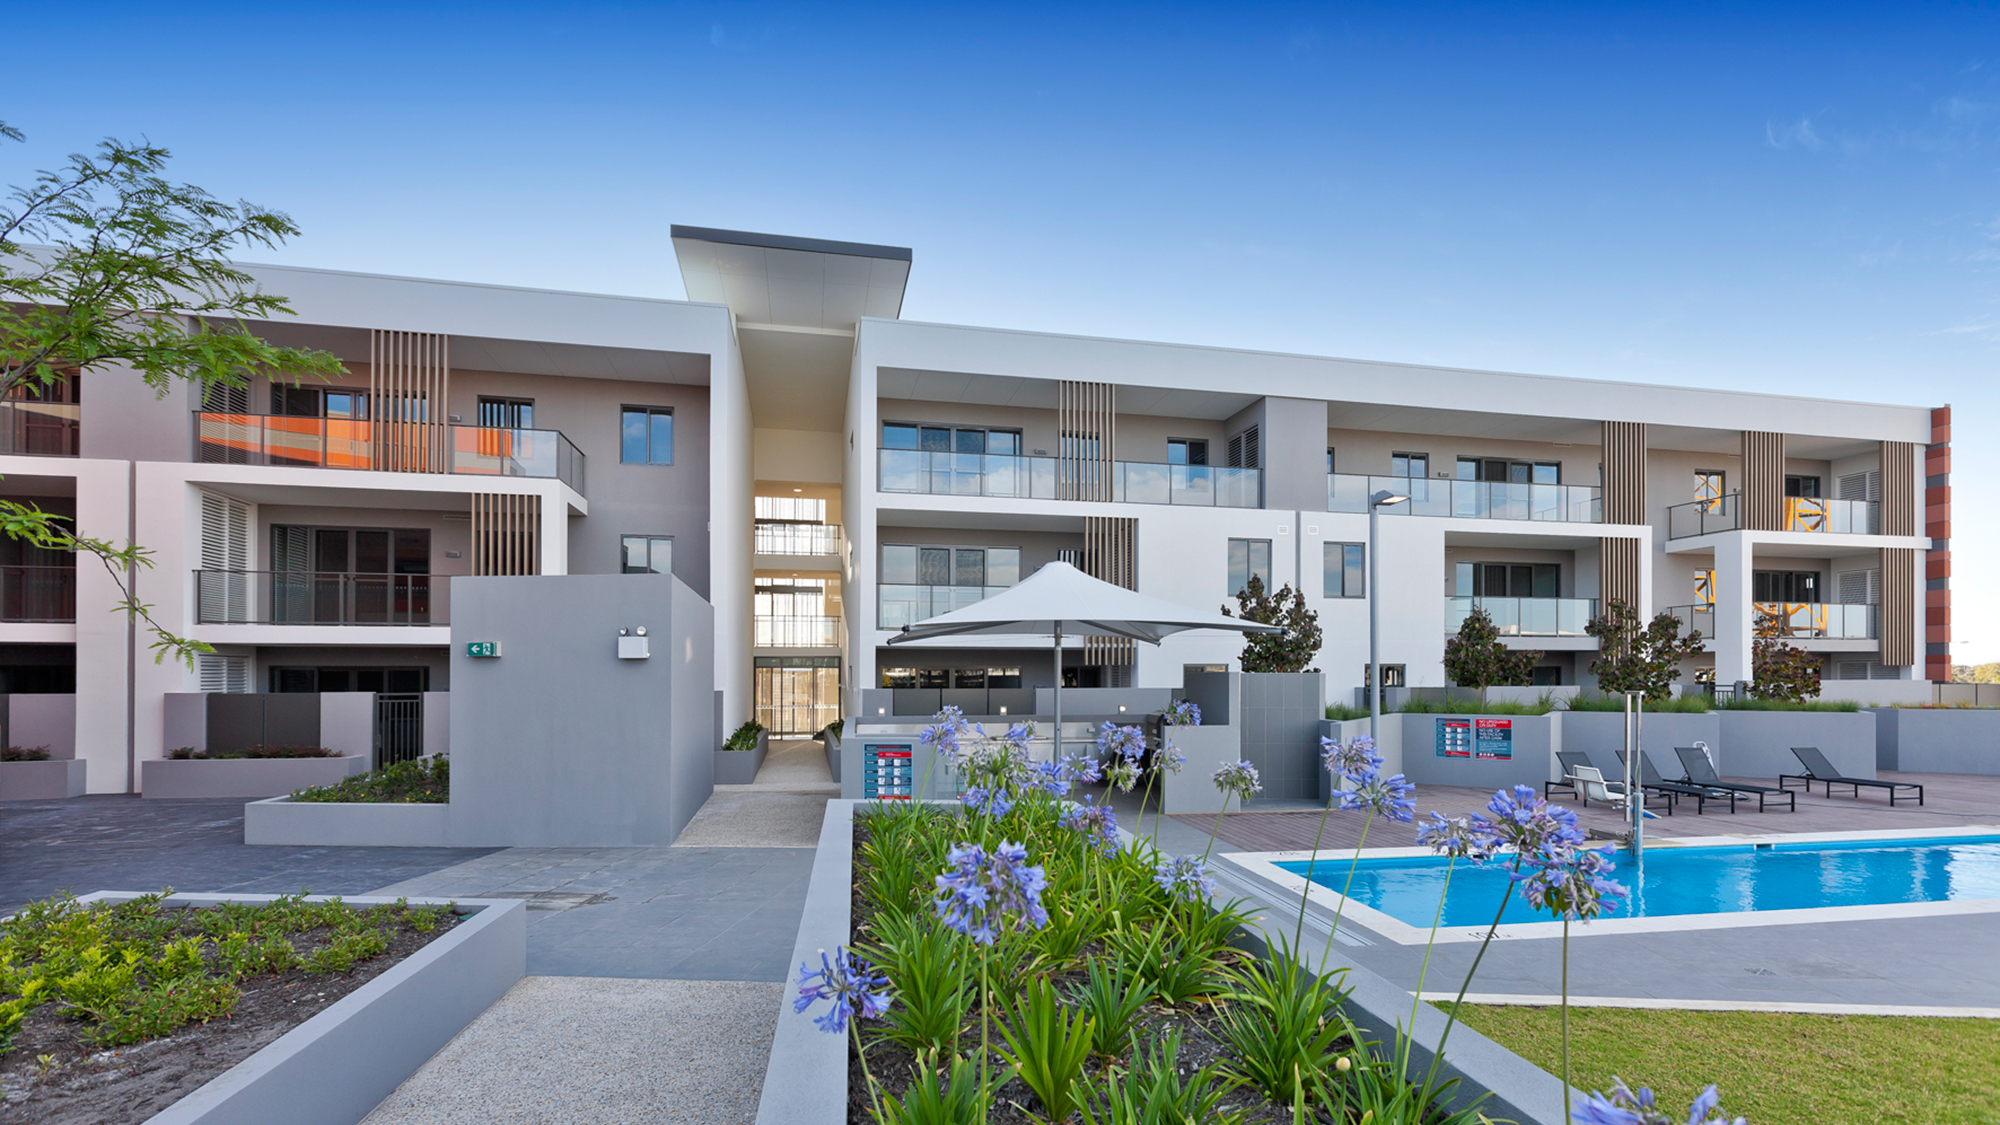 Frasers Property Property Developer In Australia - The 5 best places to buy property in australia